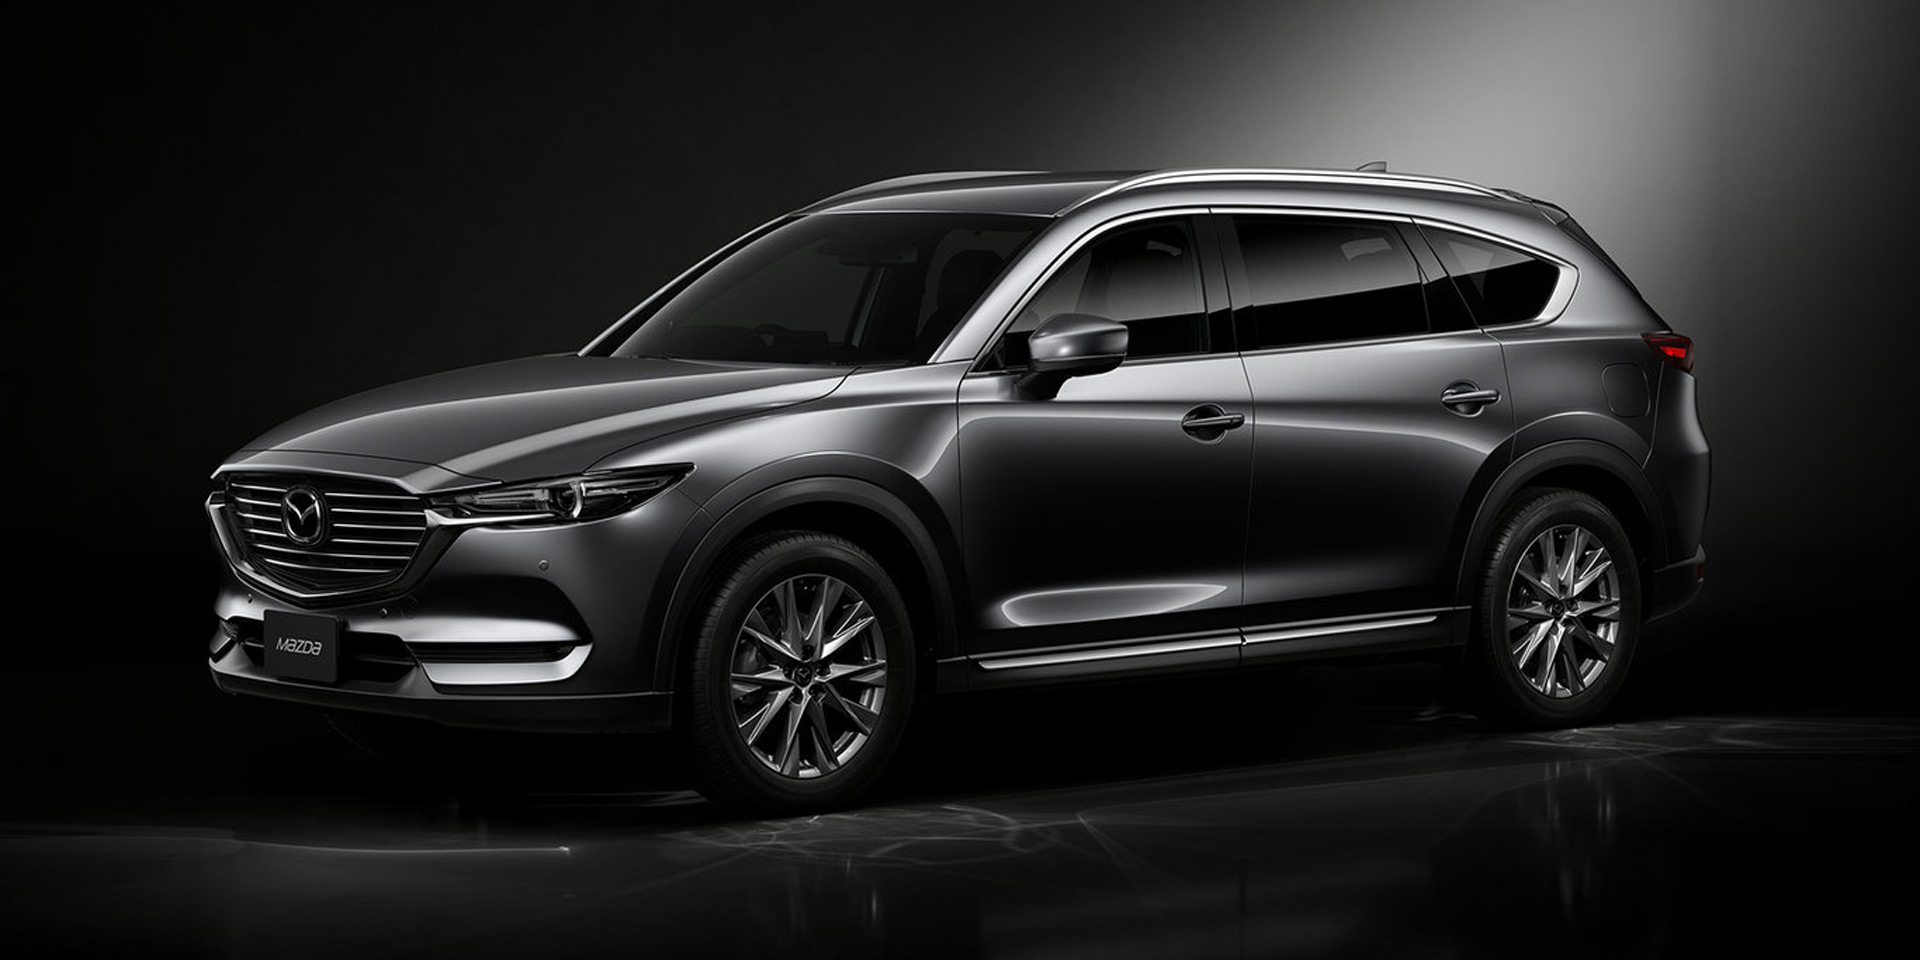 New Mazda Suv >> Mazda Cx 8 Revealed A New 3 Row Suv For Japan